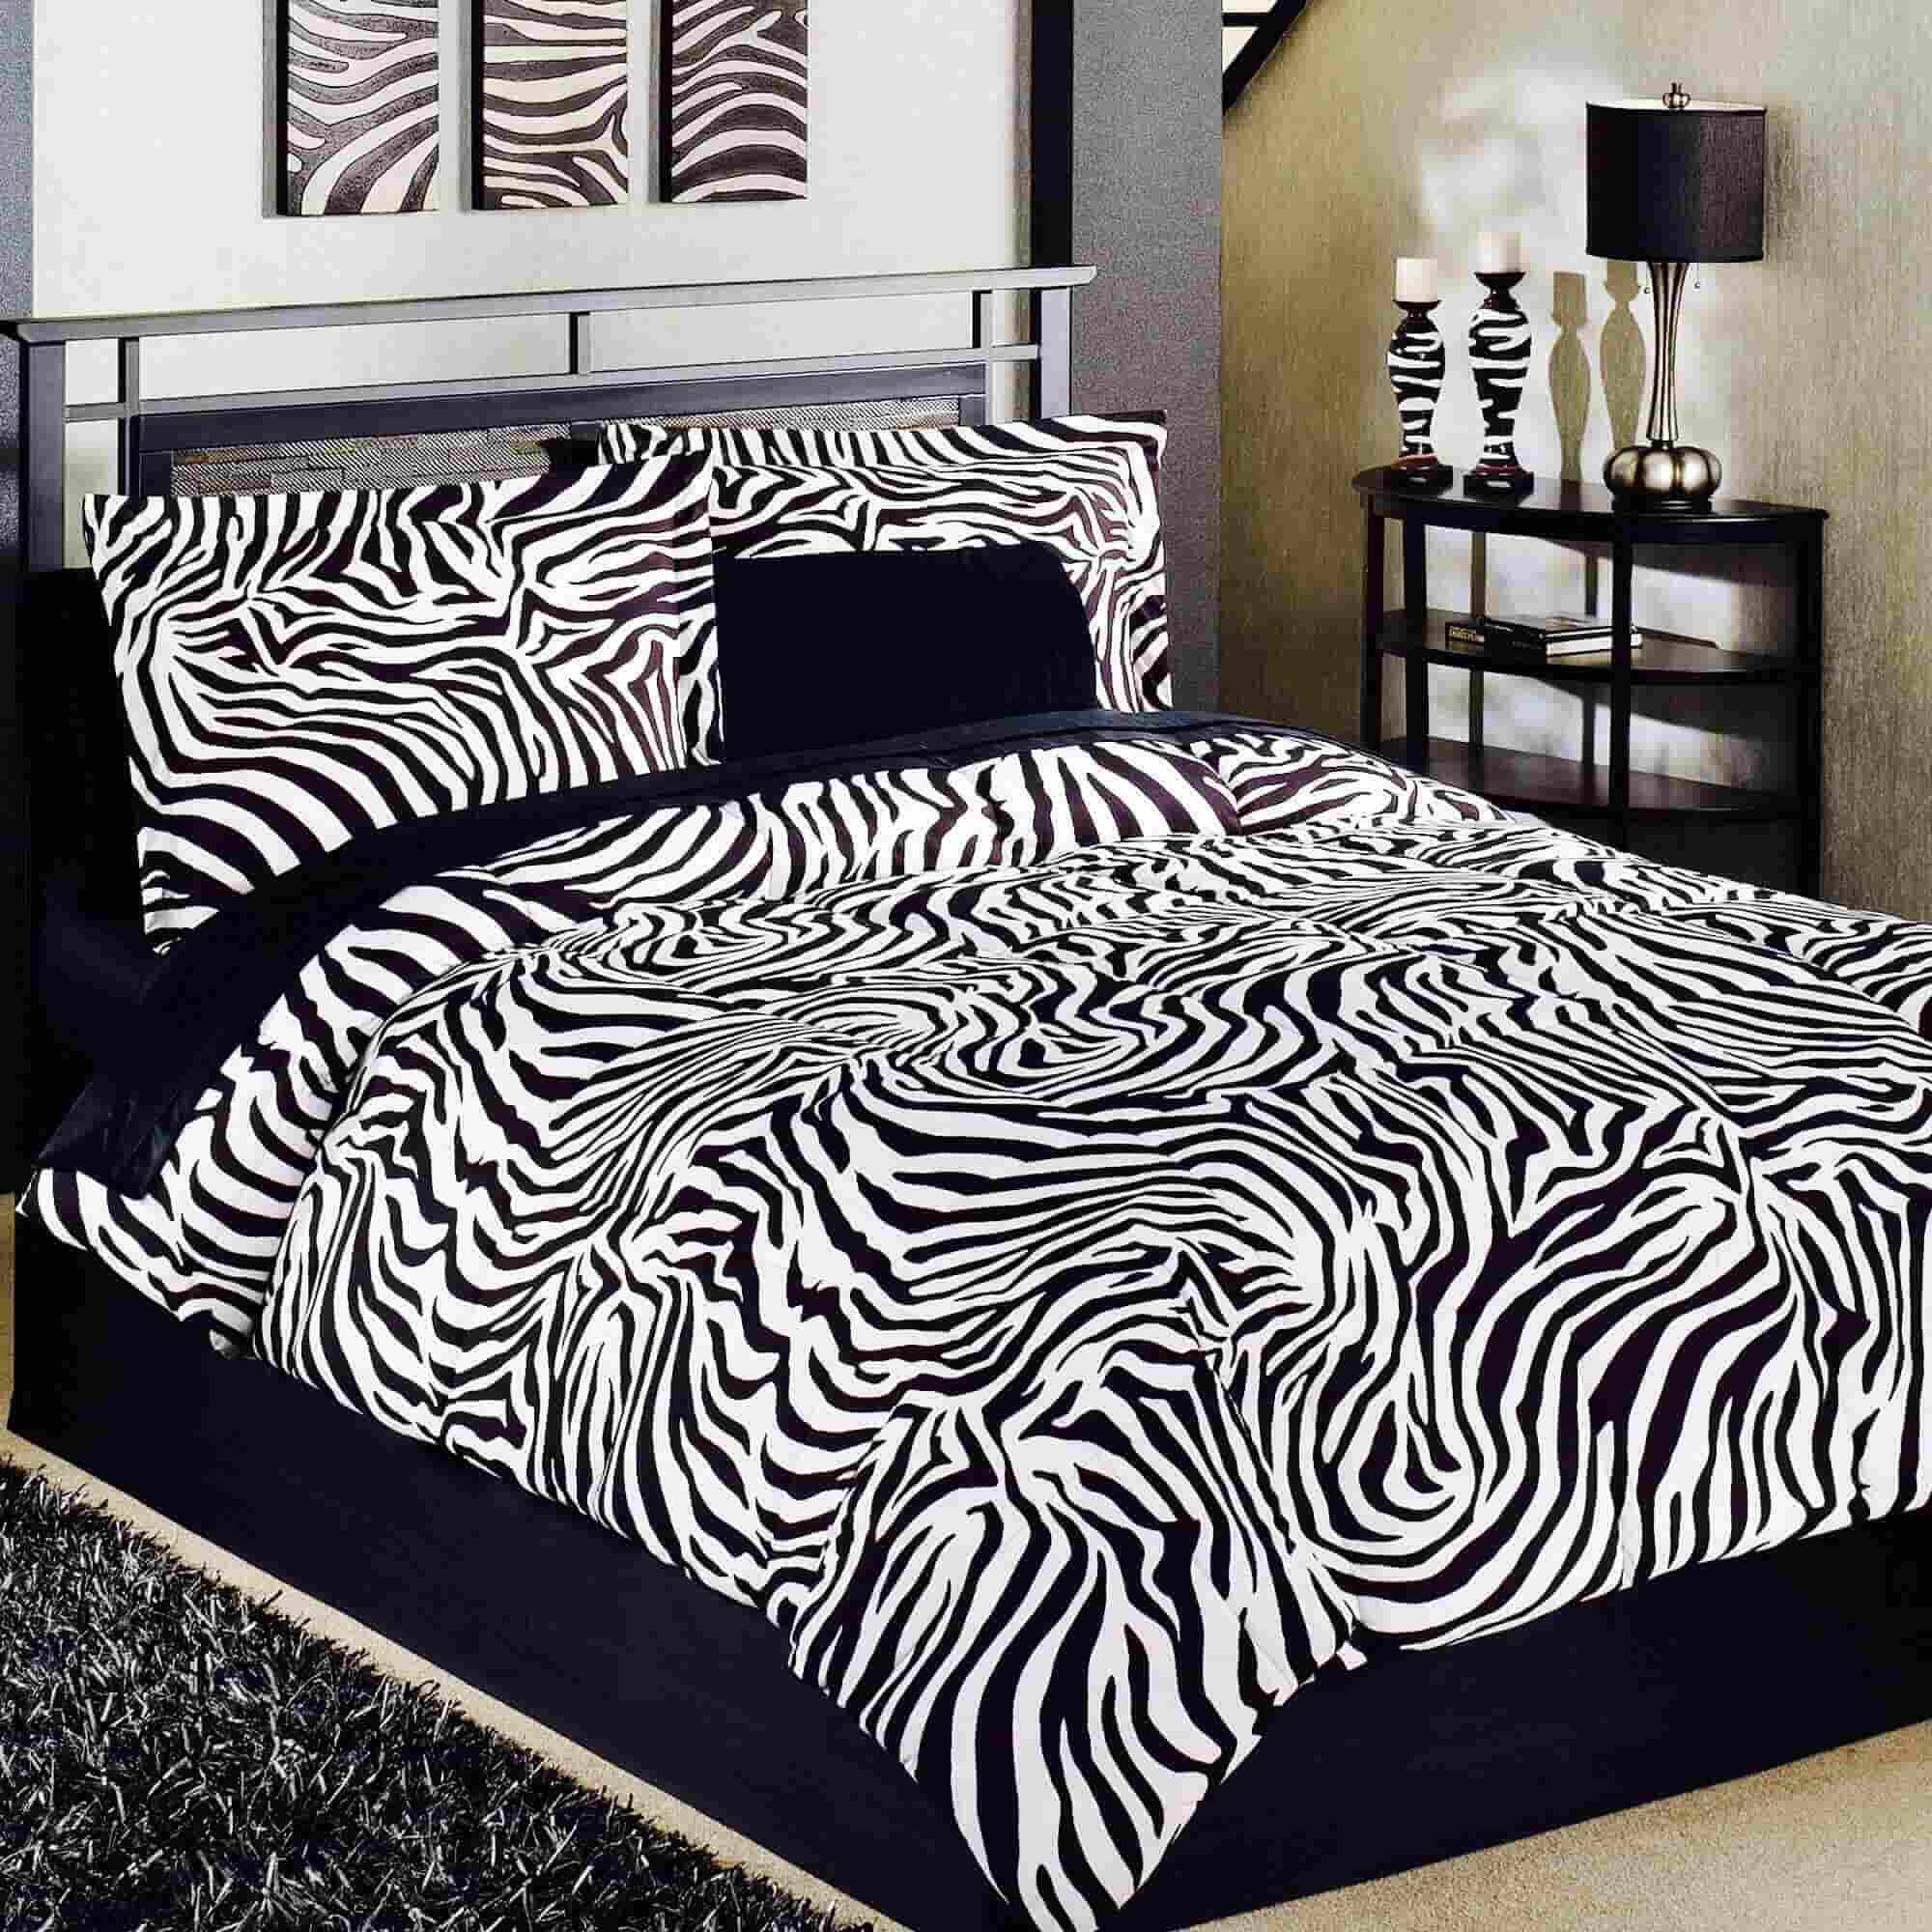 Teenage Zebra Bedroom Designs Ideas